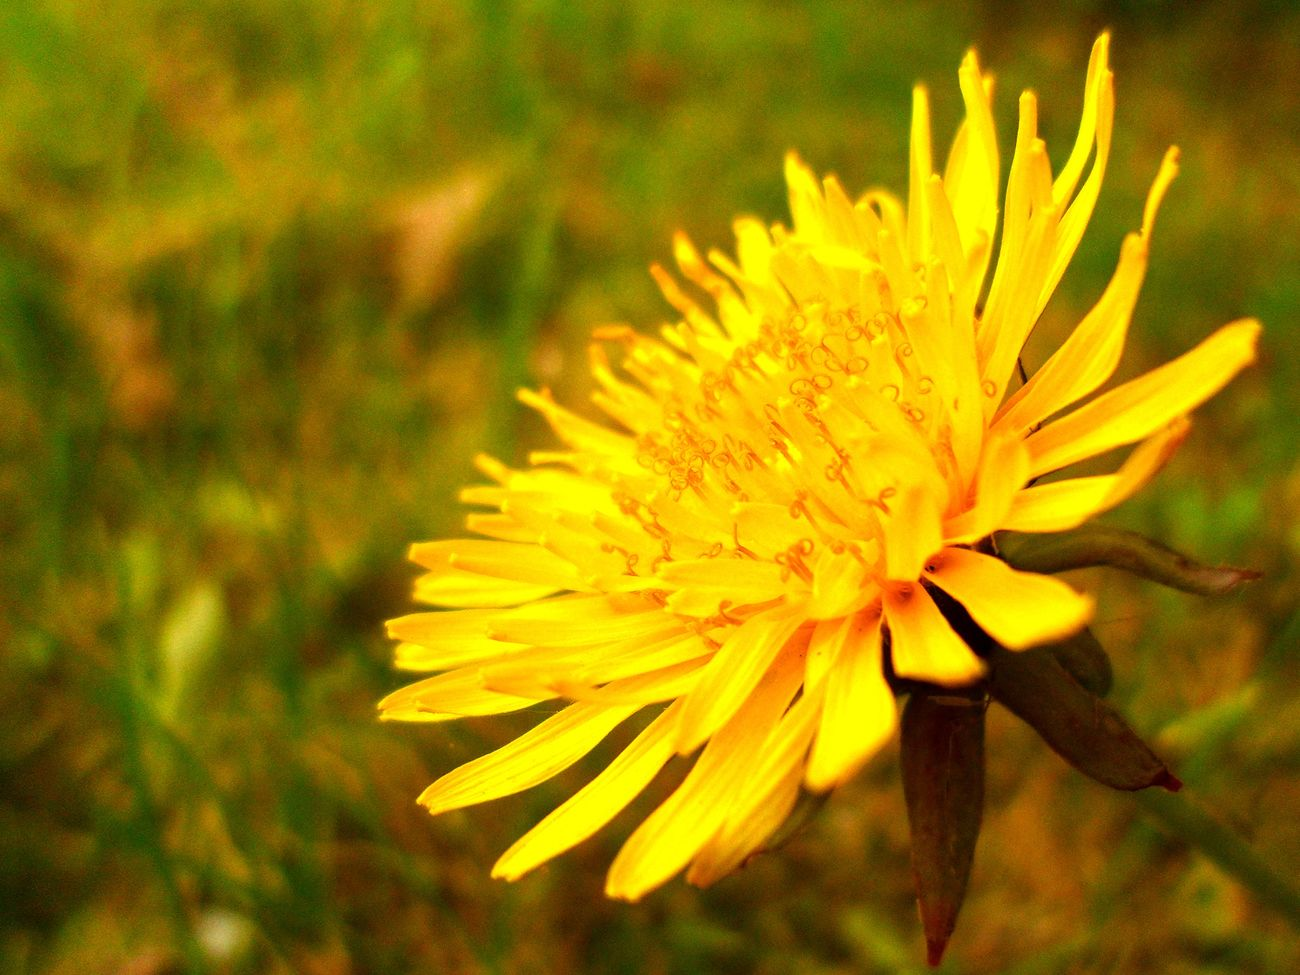 Flower Outdoors Day Flower Head Nature Yellow Plant Focus On Foreground First Eyeem Photo